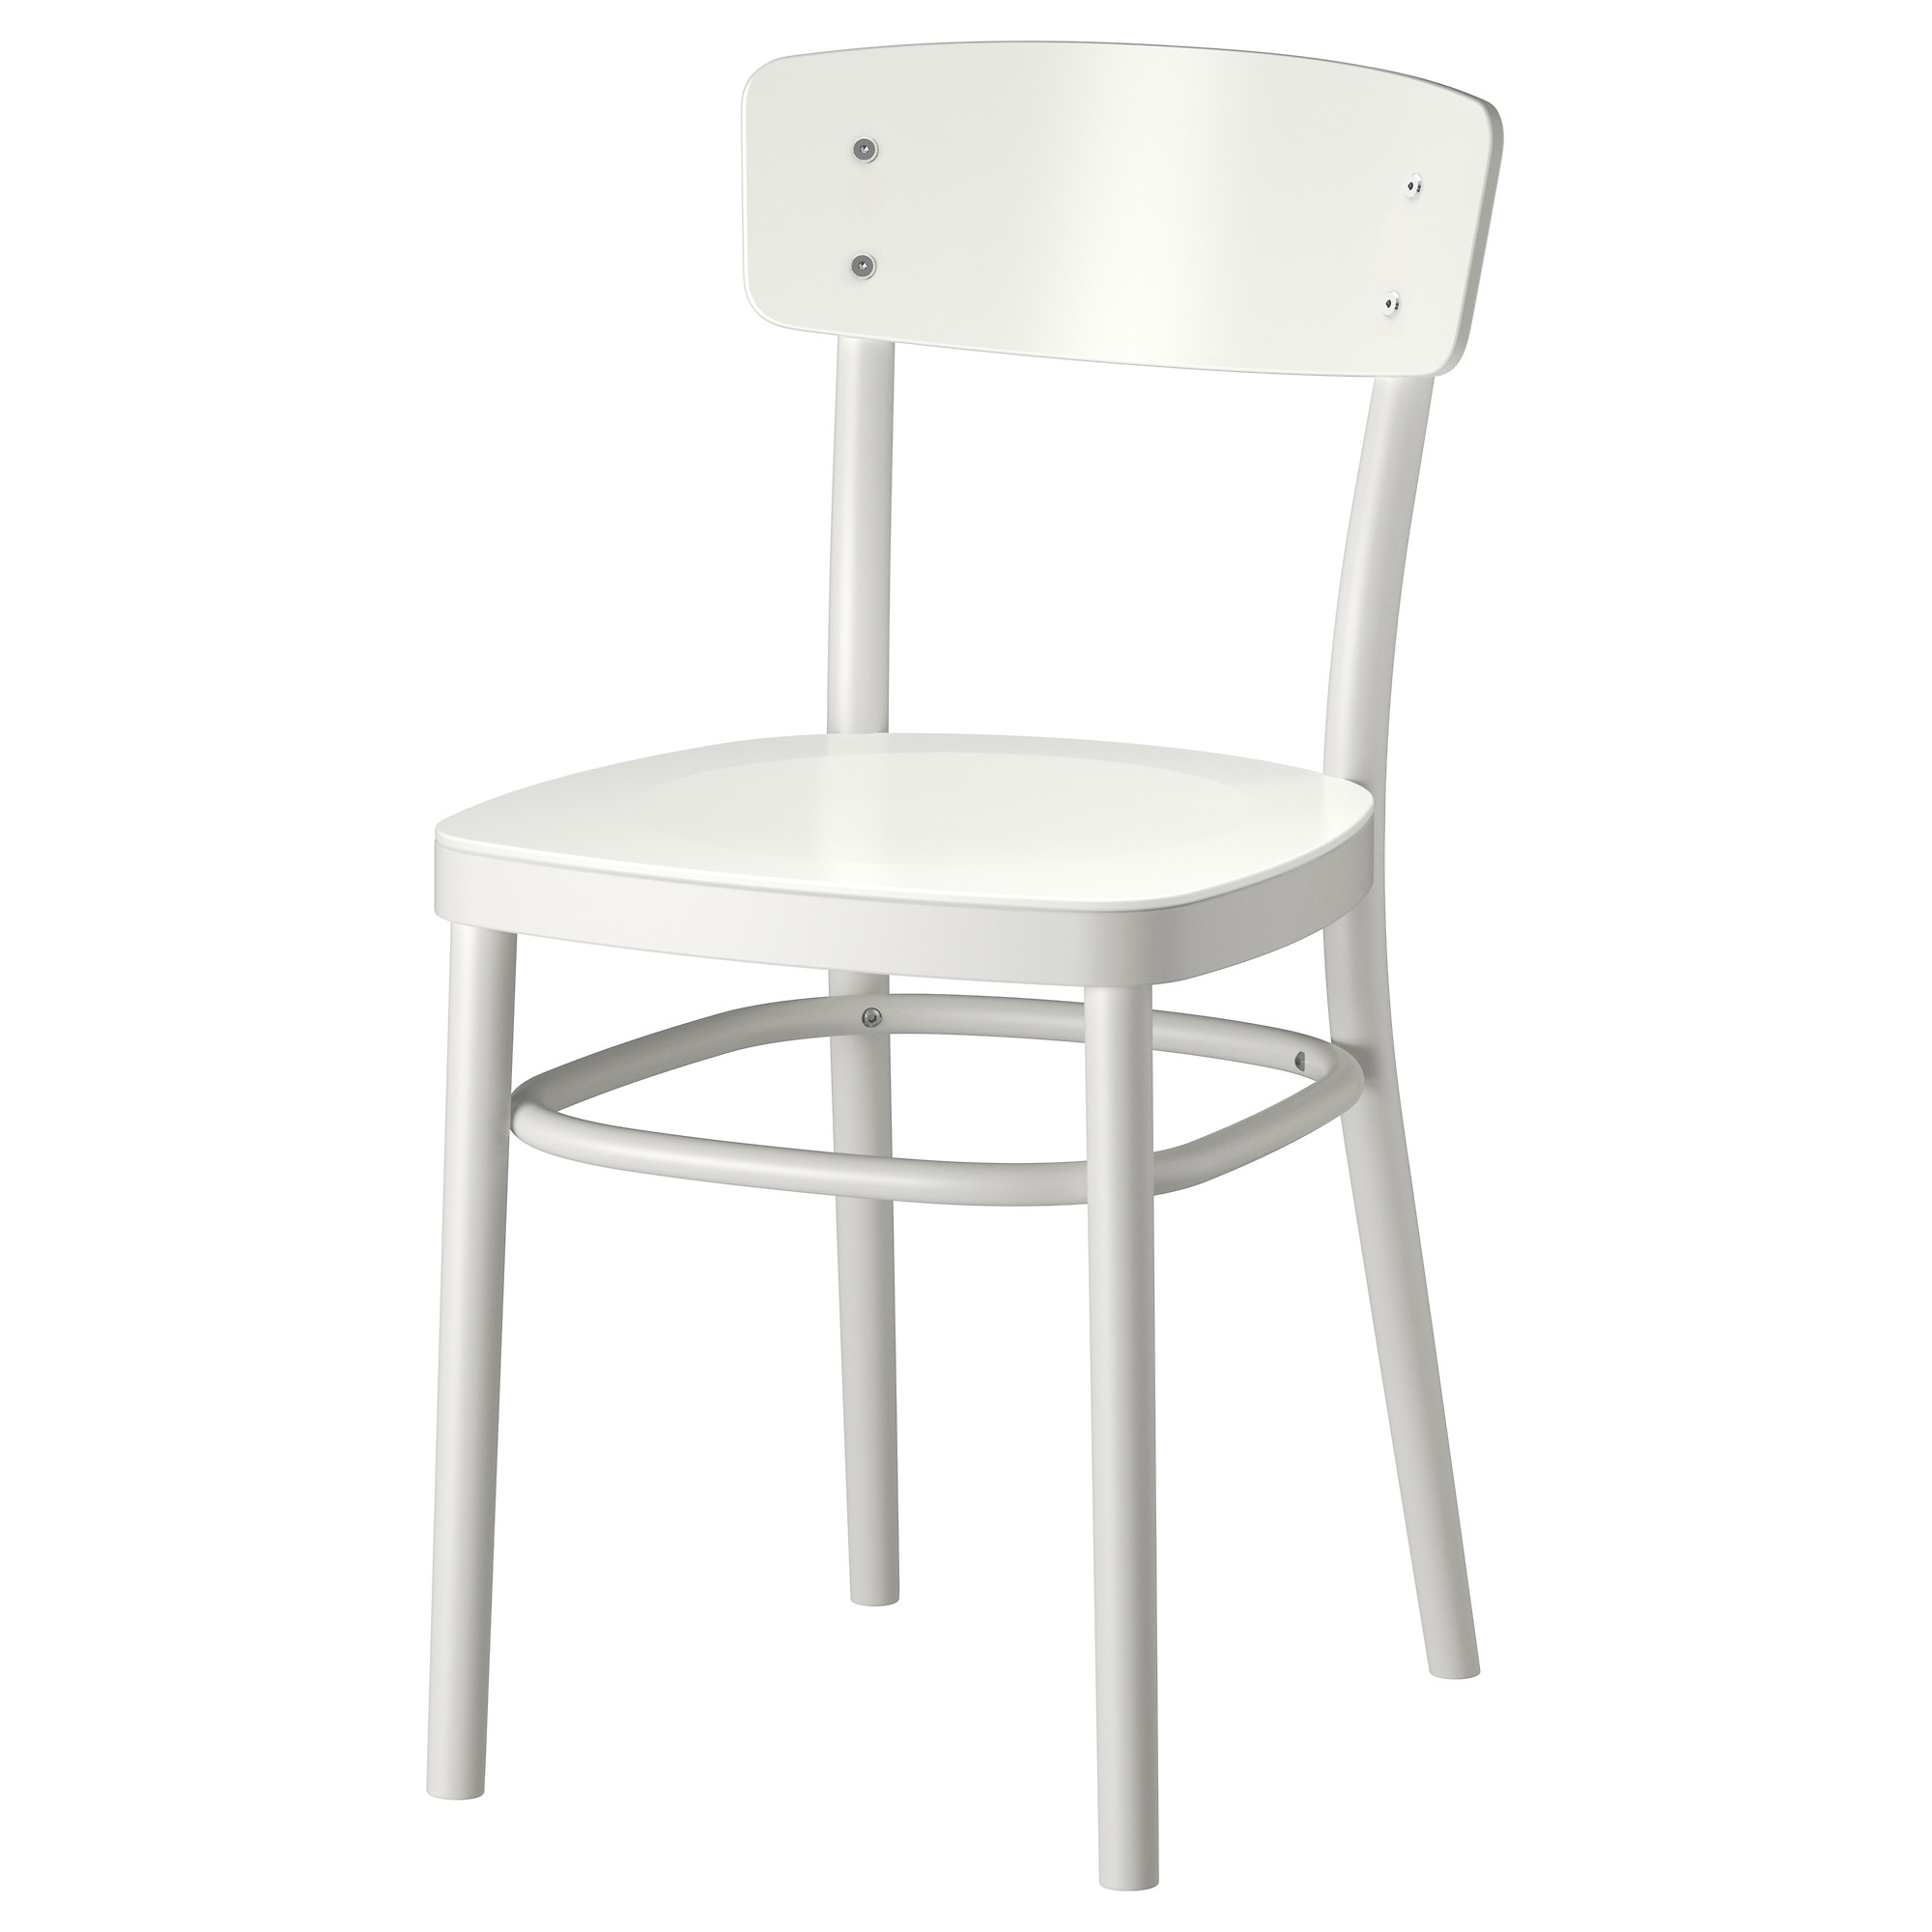 dining chairs - dining chair underframes & seat shells - ikea